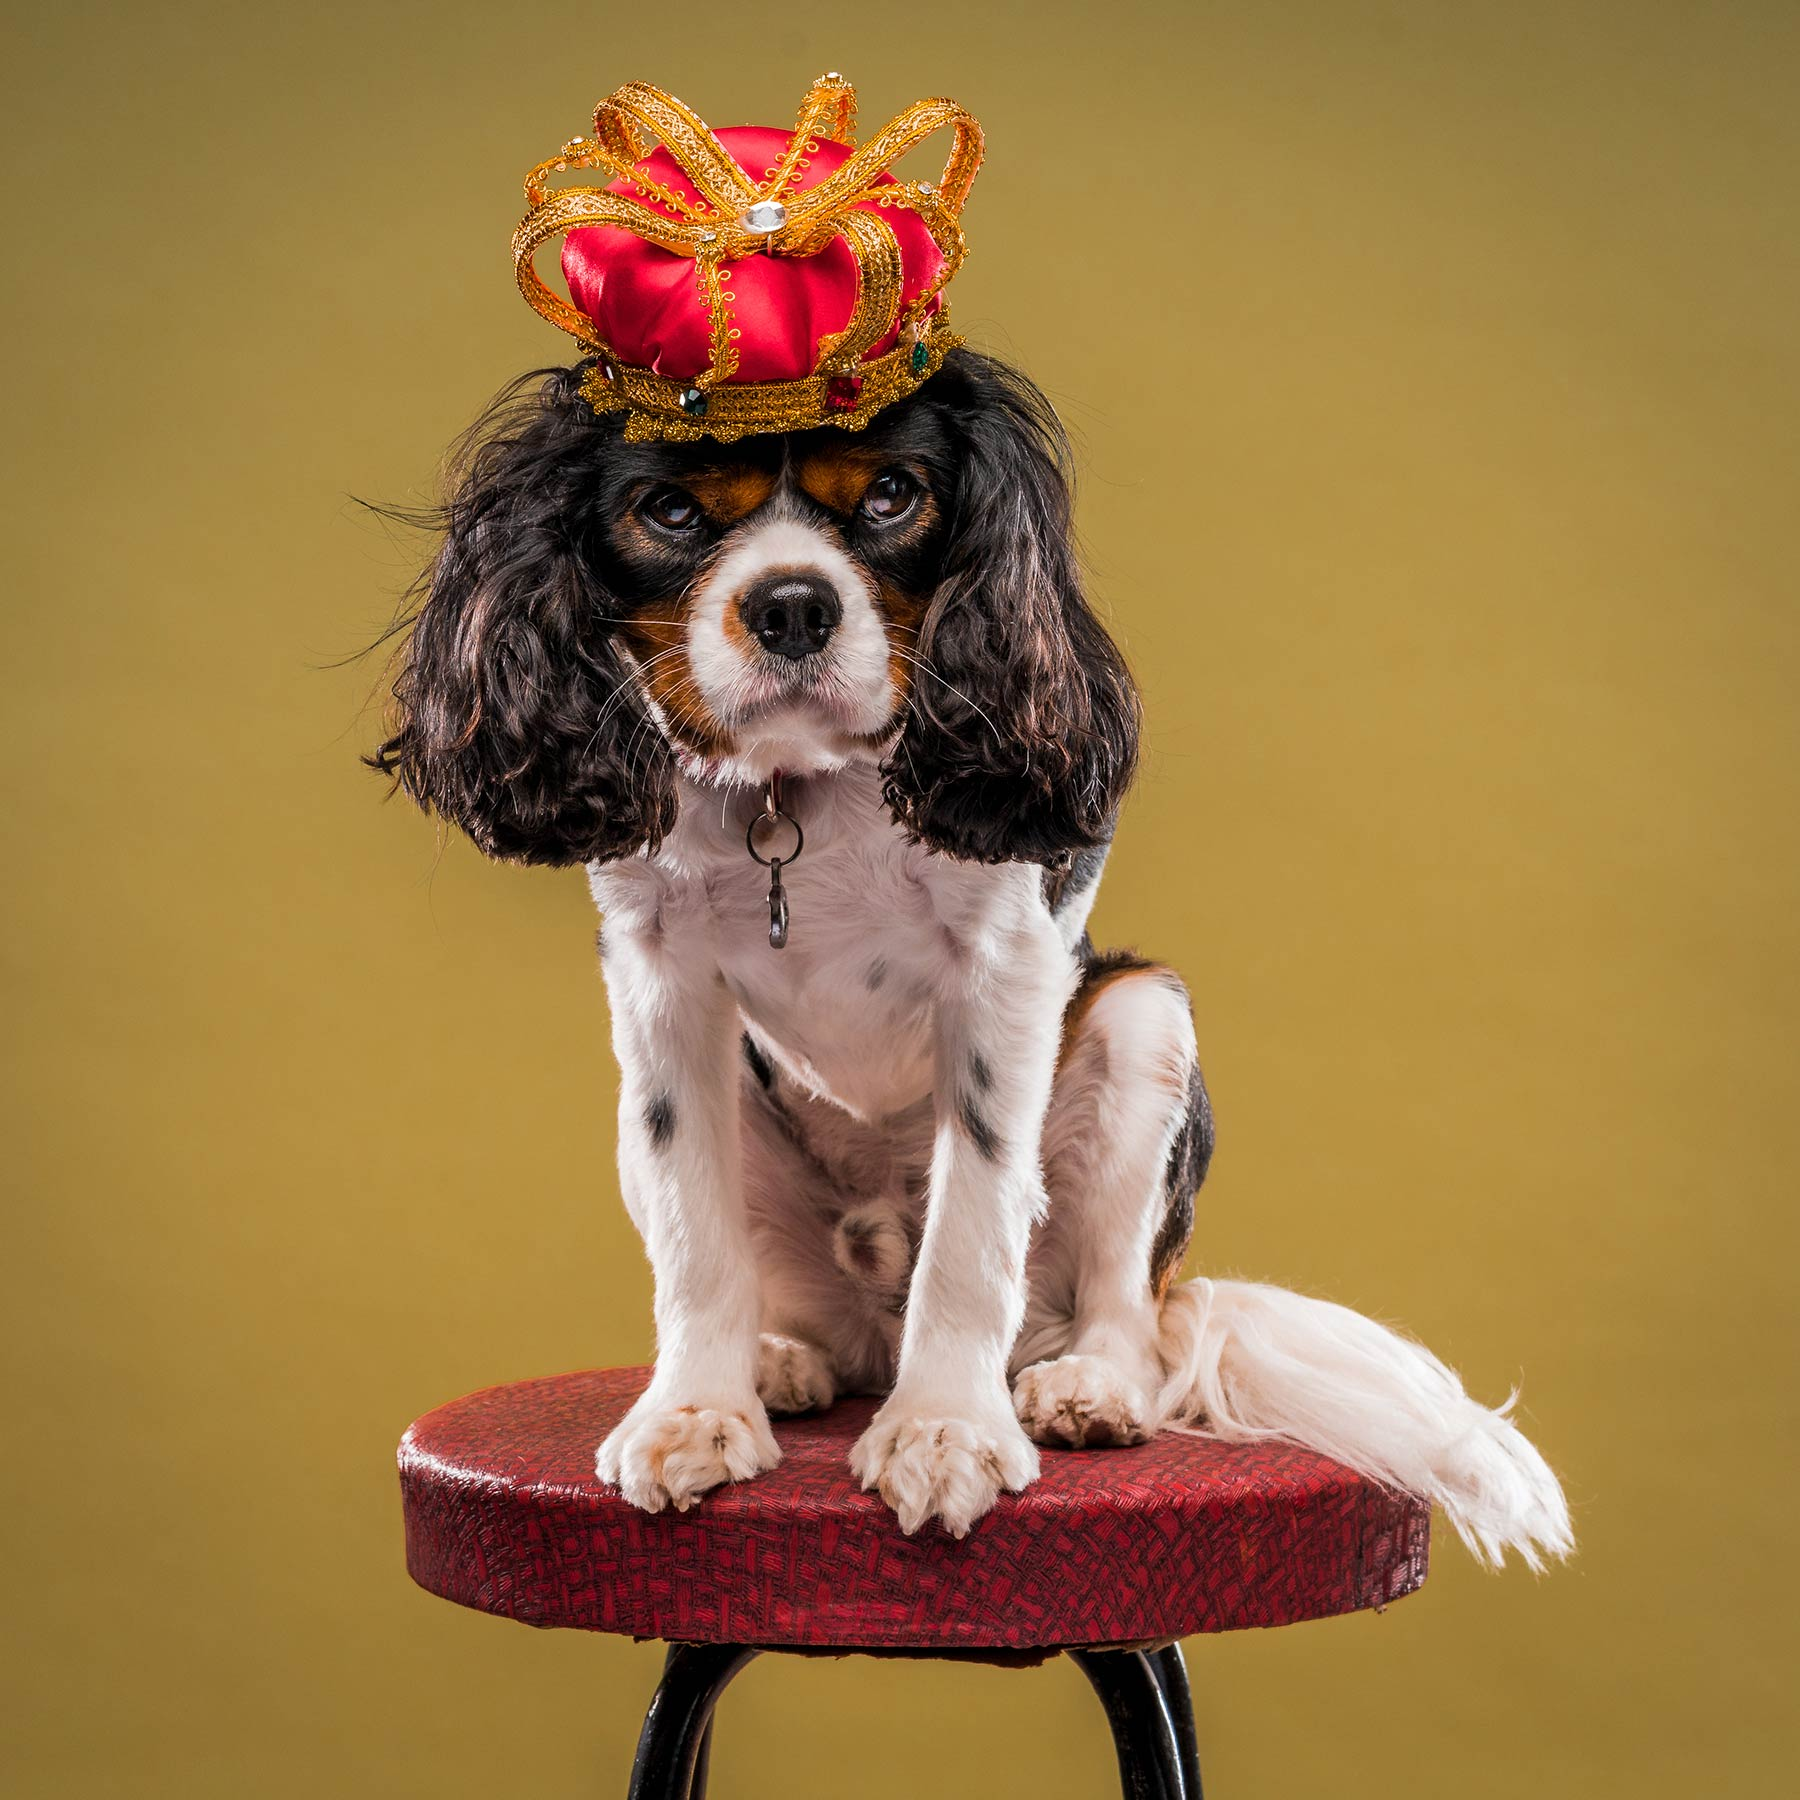 A-studio-portrait-of-a-King-Charles-Cavalier-dog-with-a-crown-against-a-yellow-background